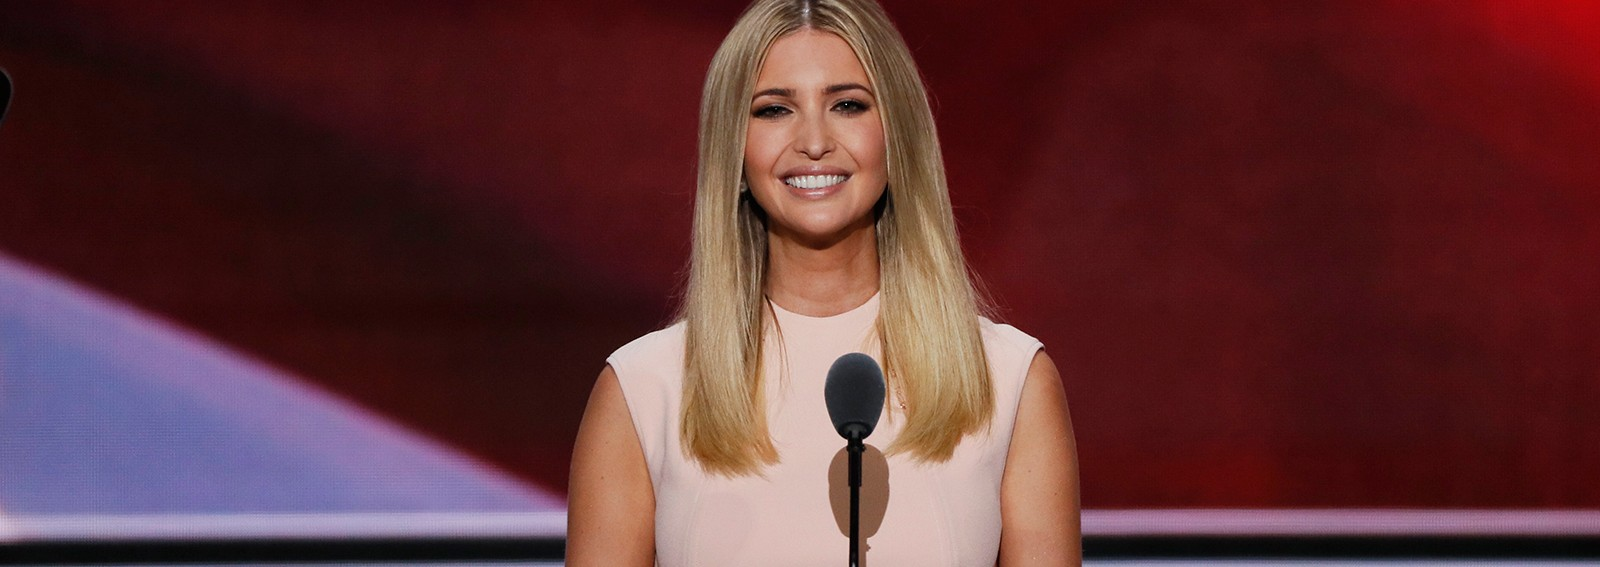 One of Ivanka Trump's closest friends may surprise you